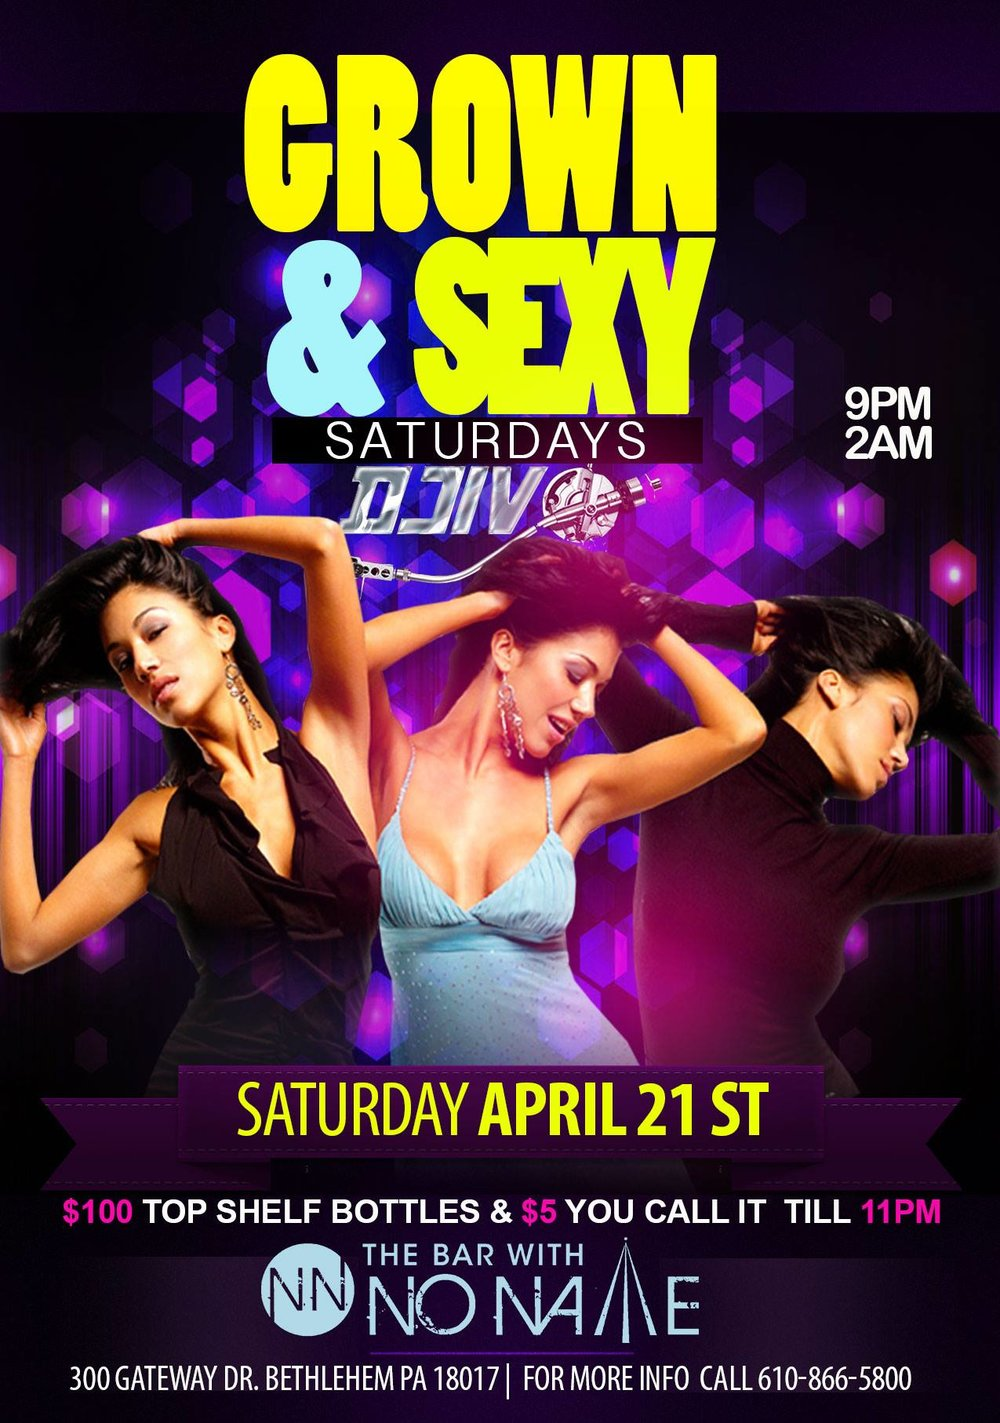 Grown and Sexy Saturdays with DJIV at the bar with no name